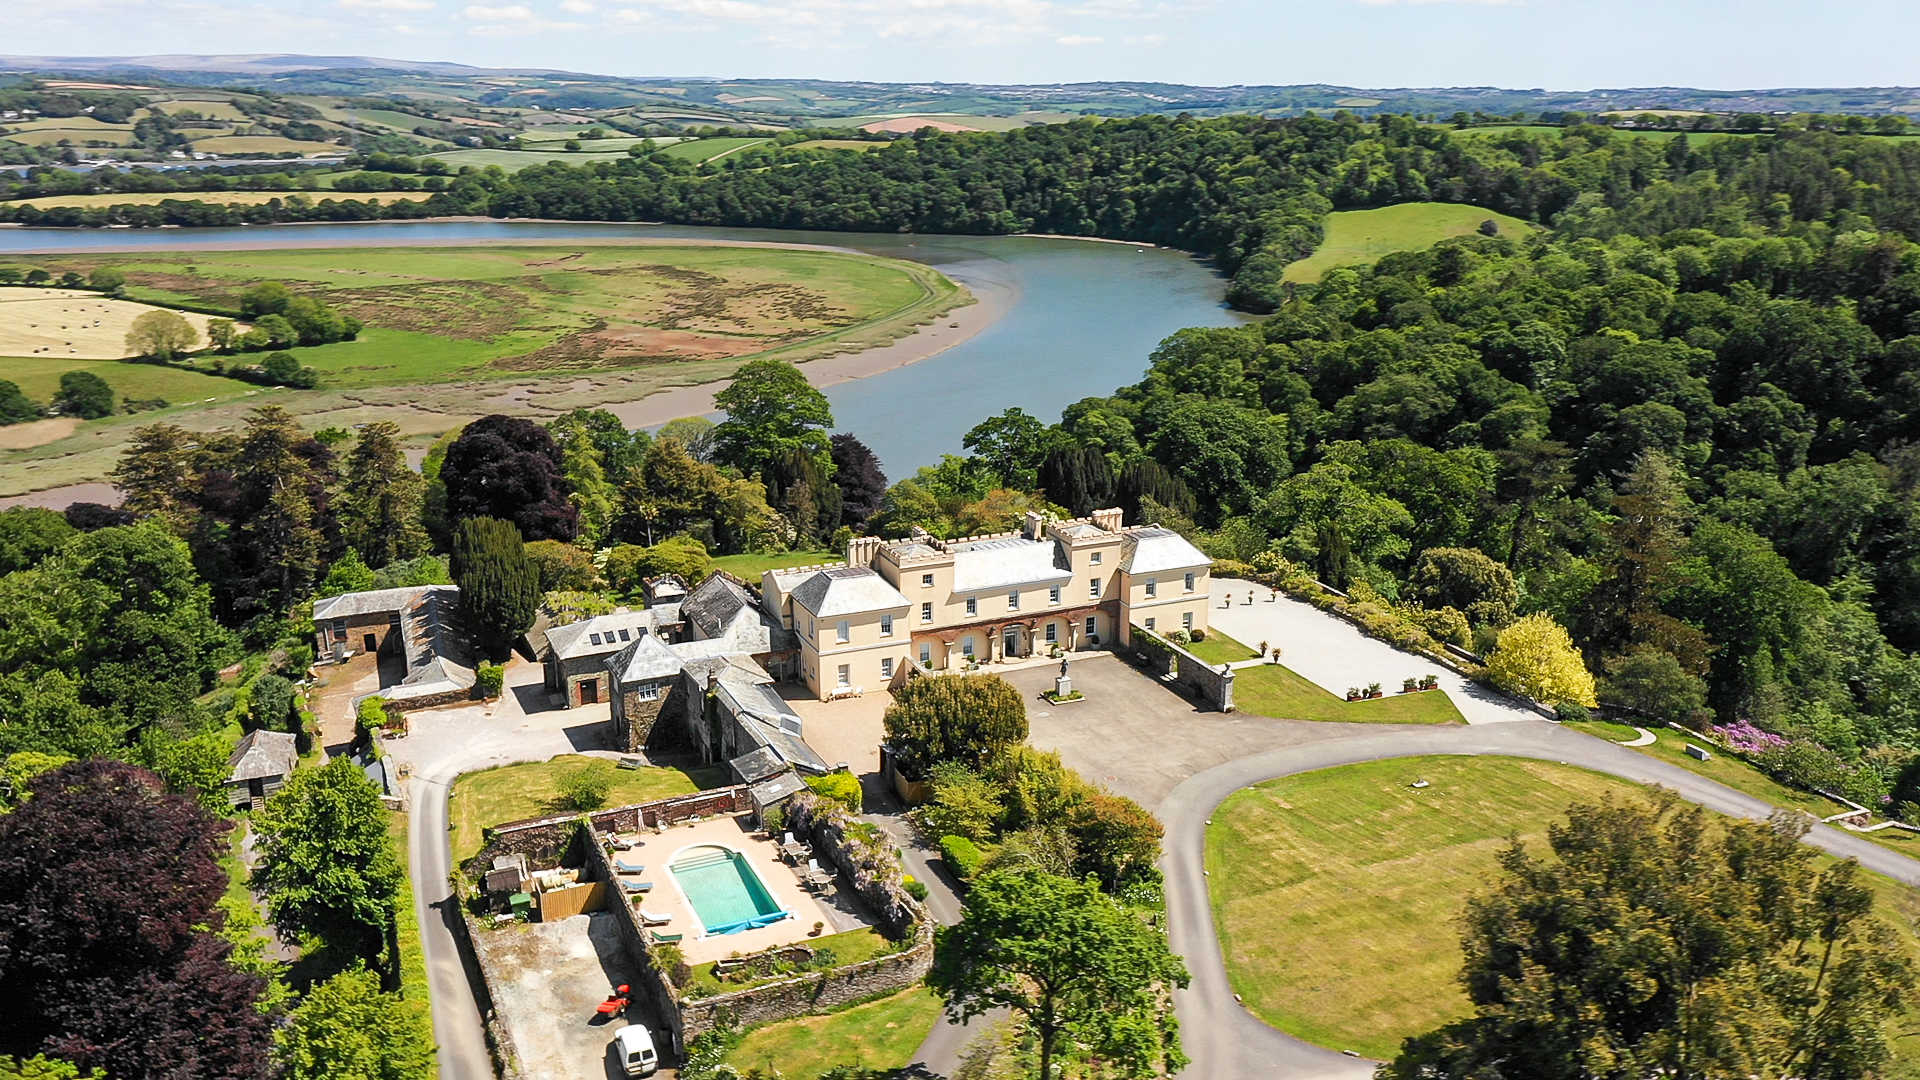 Pentillie Castle & Estate grounds aerial view